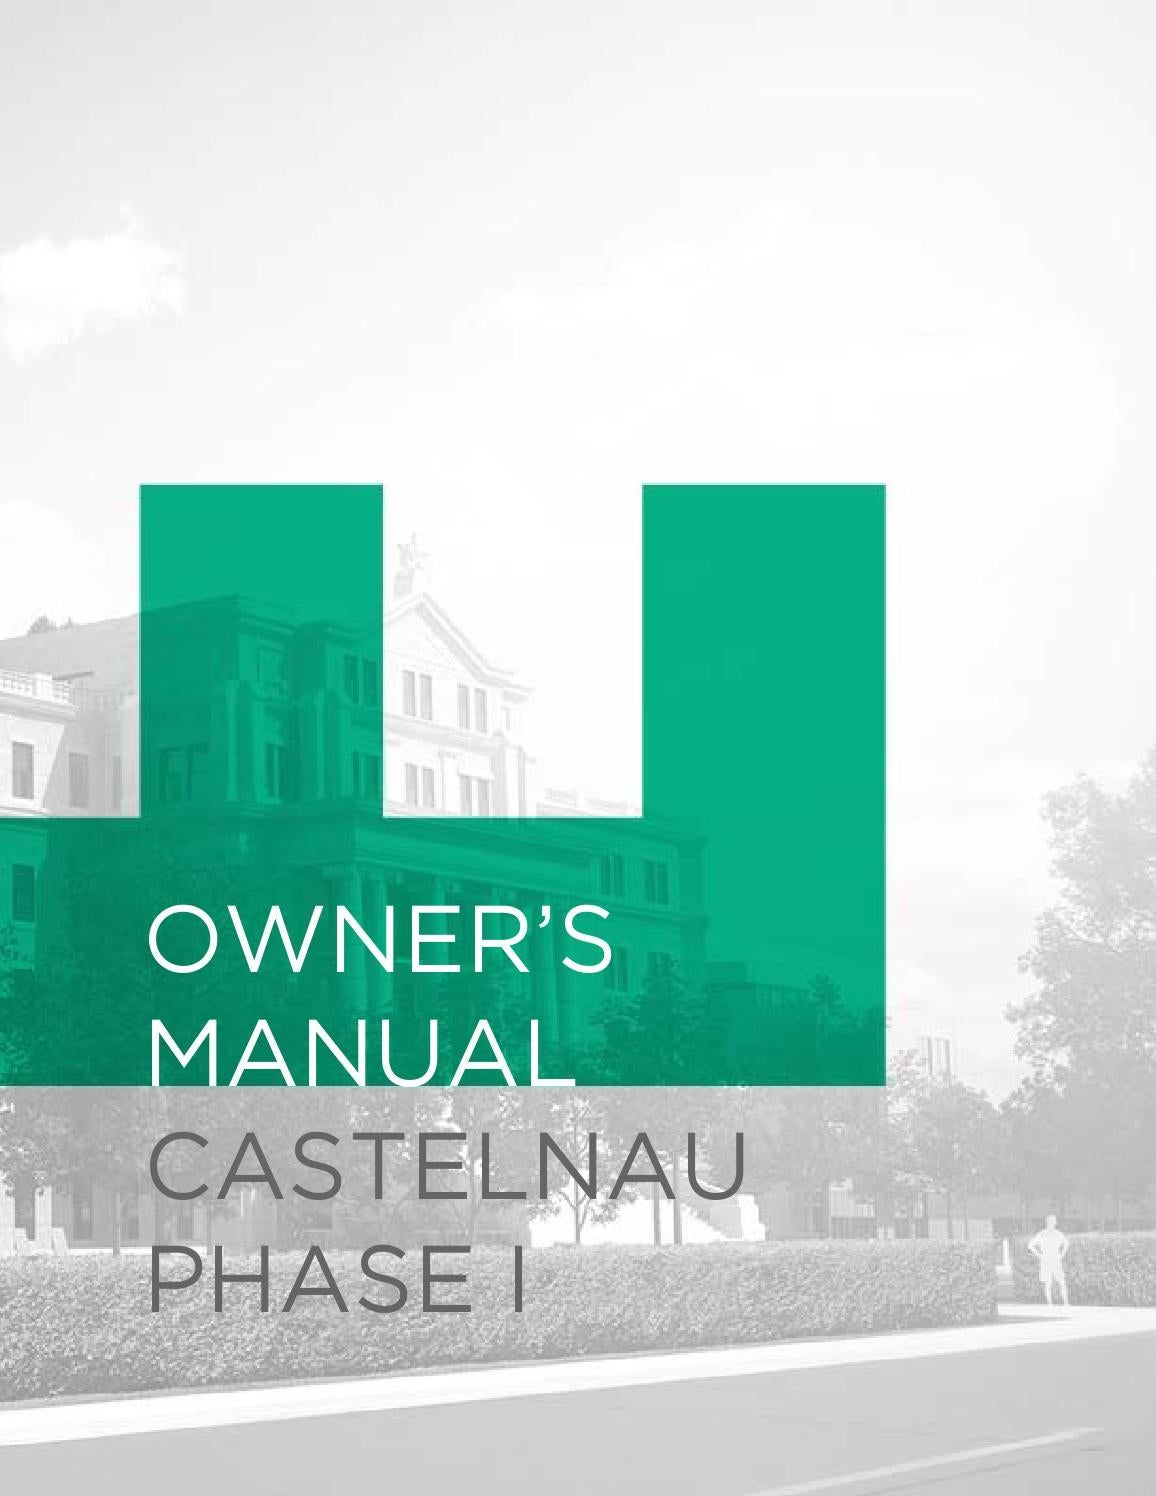 Castelnau Phase I Owners Manual By Devmcgill Issuu Parts Diagram For Gourmet Single Handle Kitchen Faucet 150 450